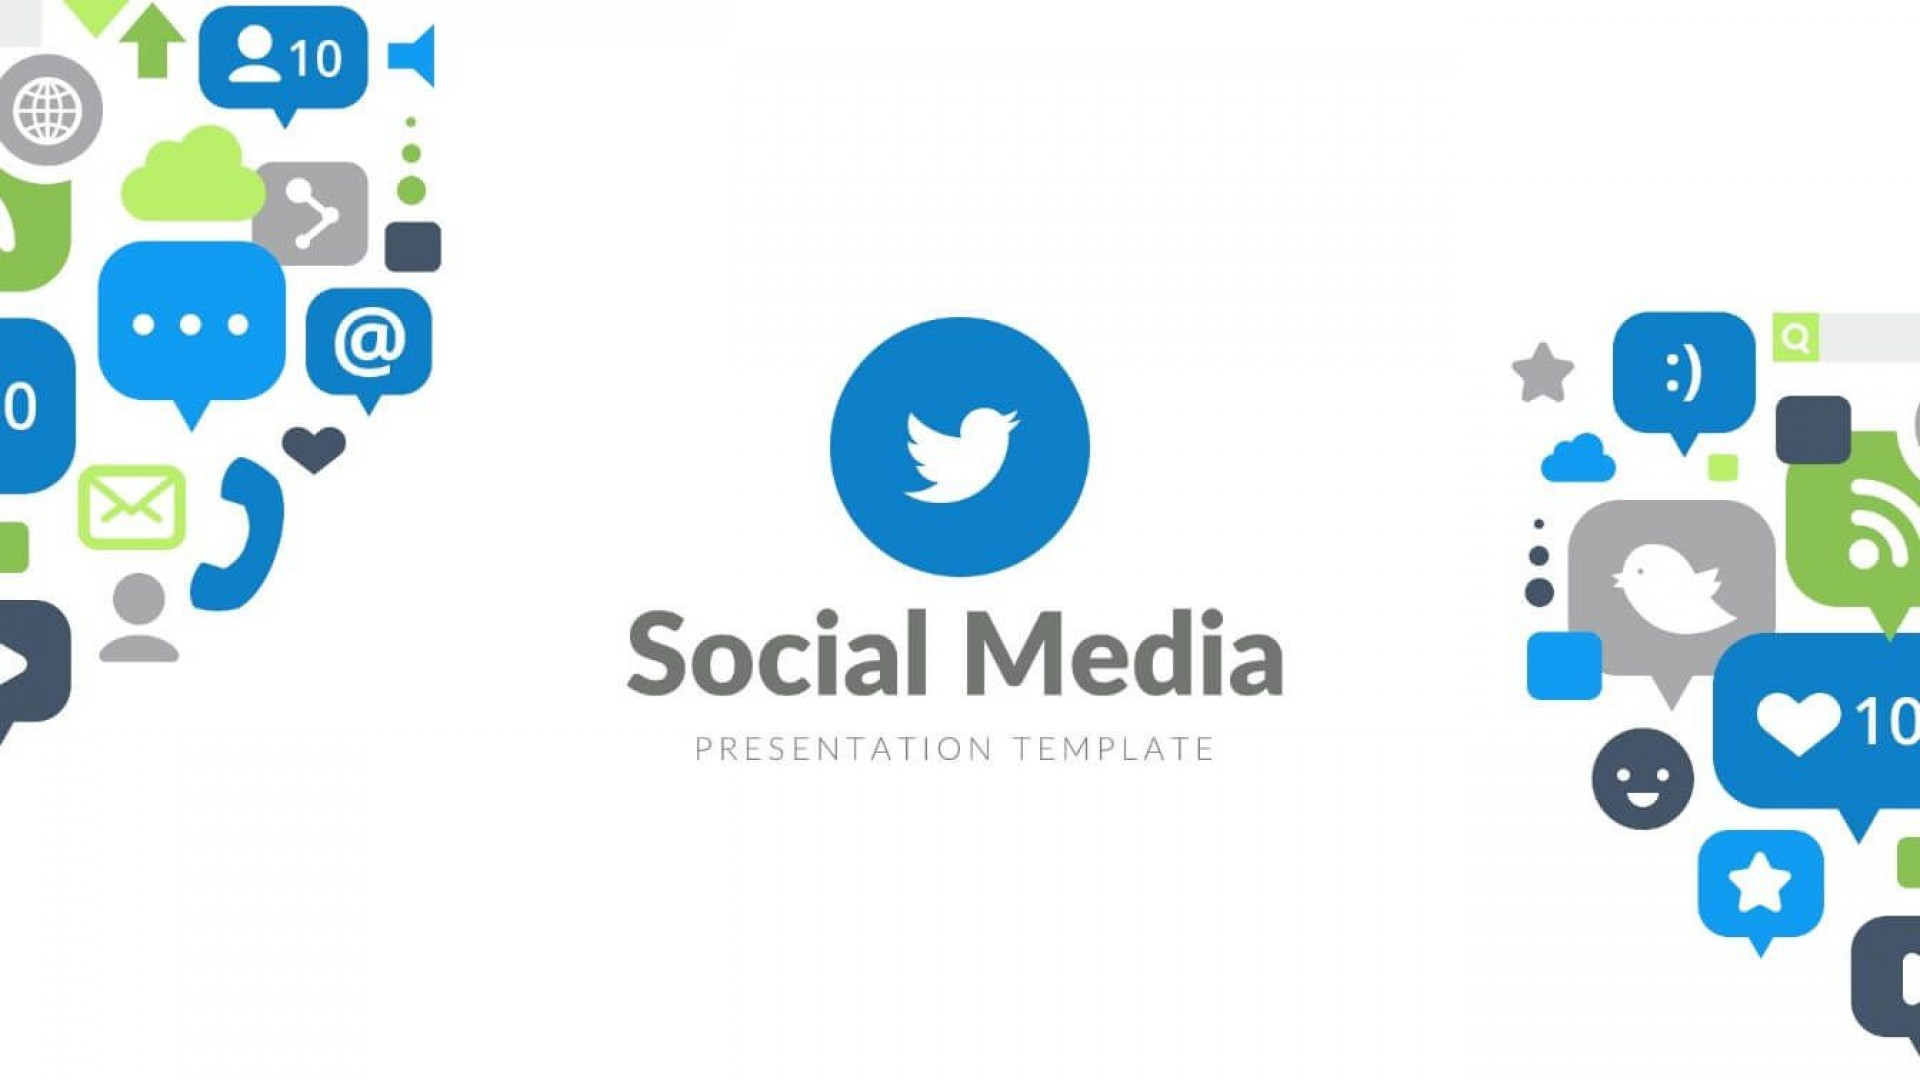 008 Best Social Media Powerpoint Template Example  Templates Report Free Social-media-marketing-powerpoint-template1920